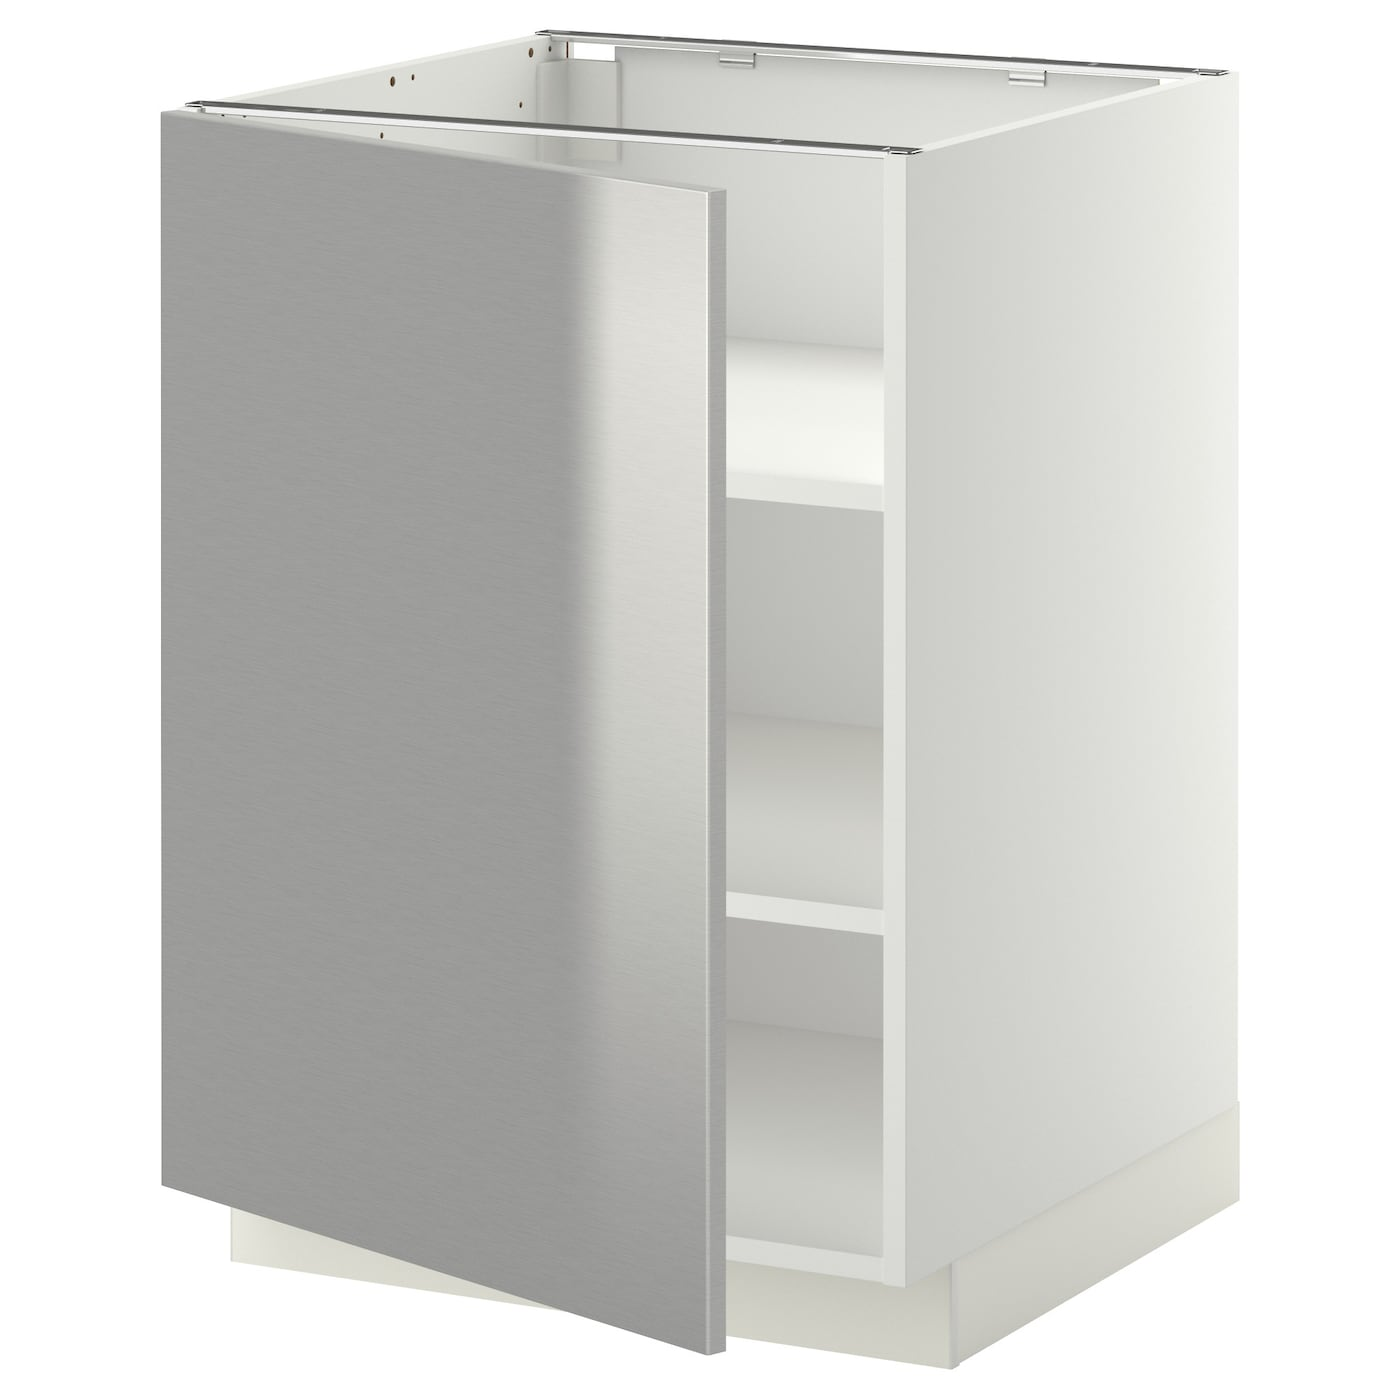 ikea metal kitchen cabinets metod base cabinet with shelves white grevsta stainless 4583